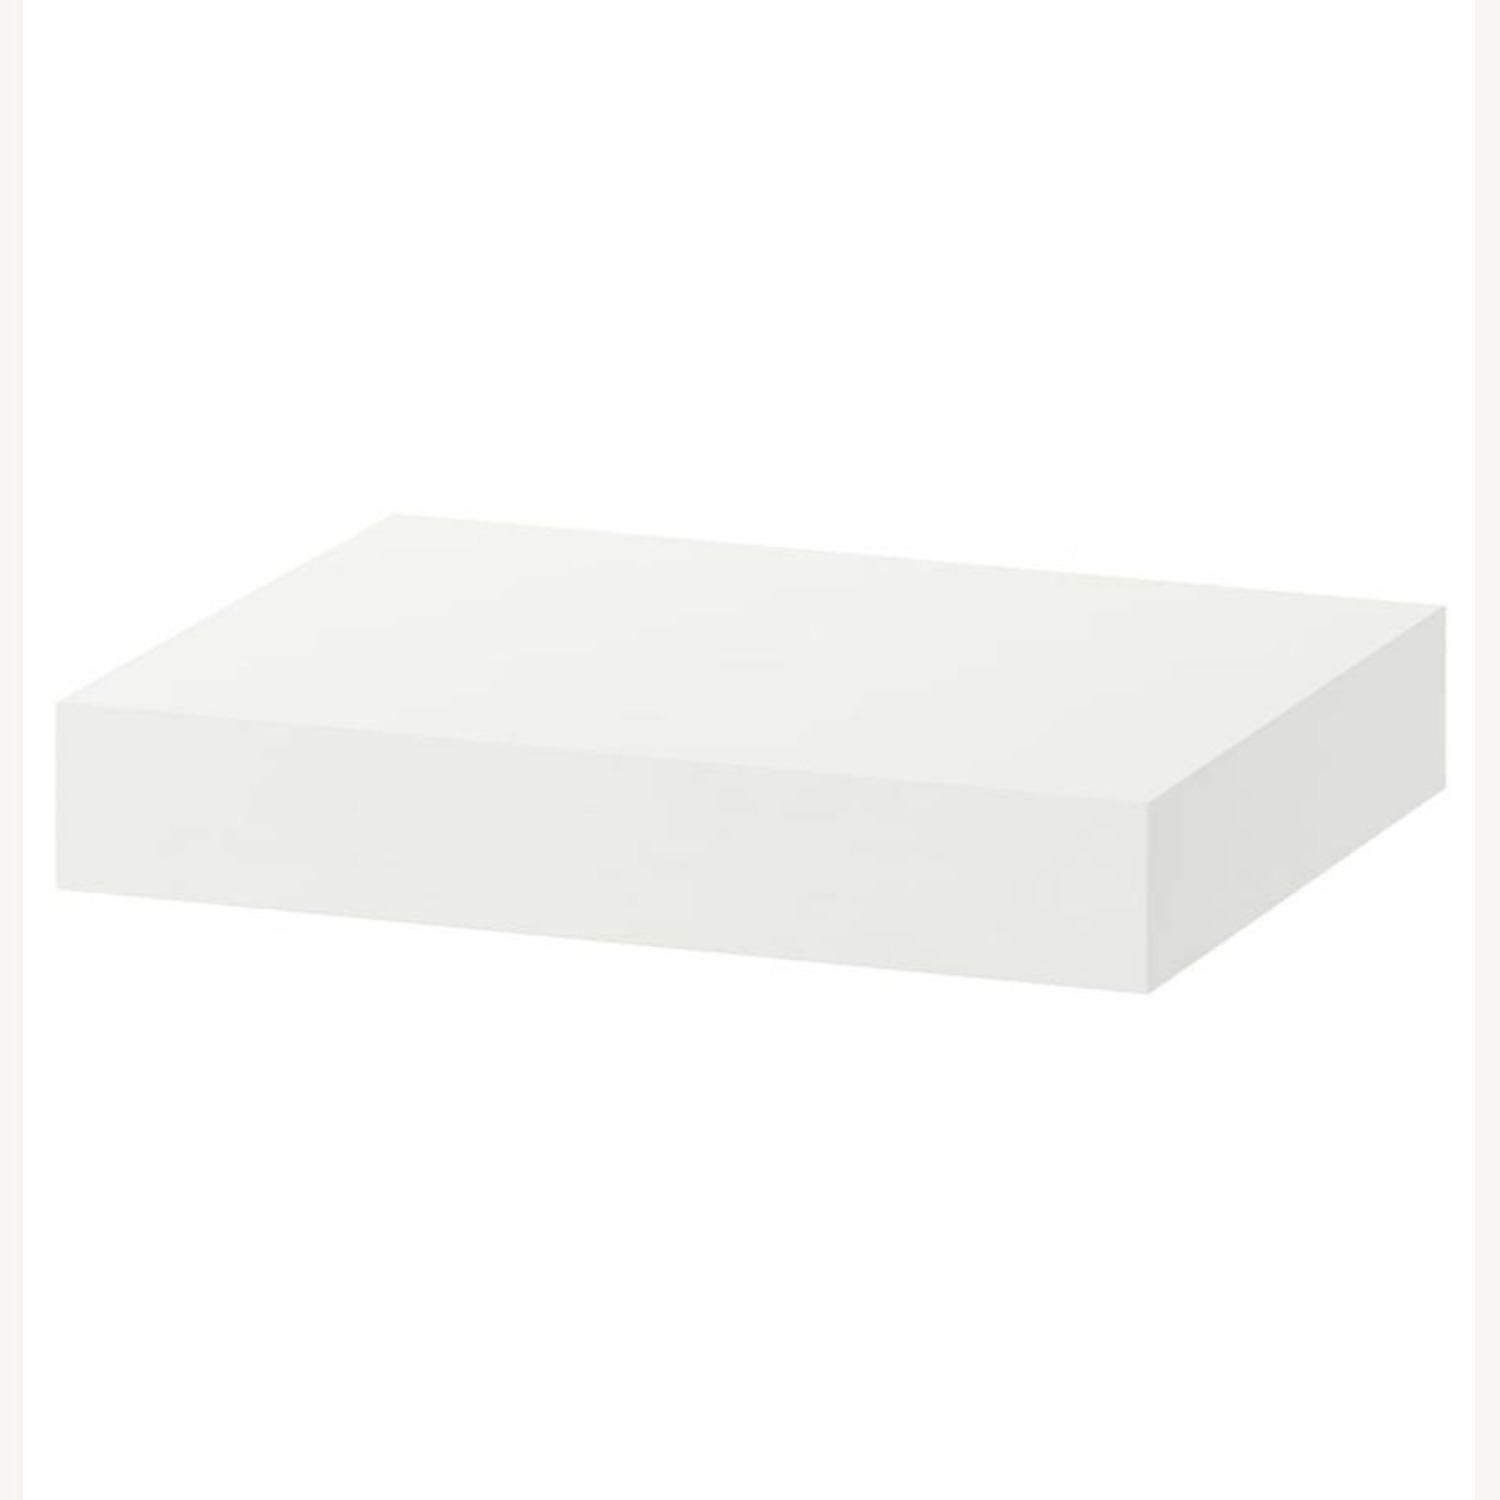 Ikea Floating Shelf - image-0